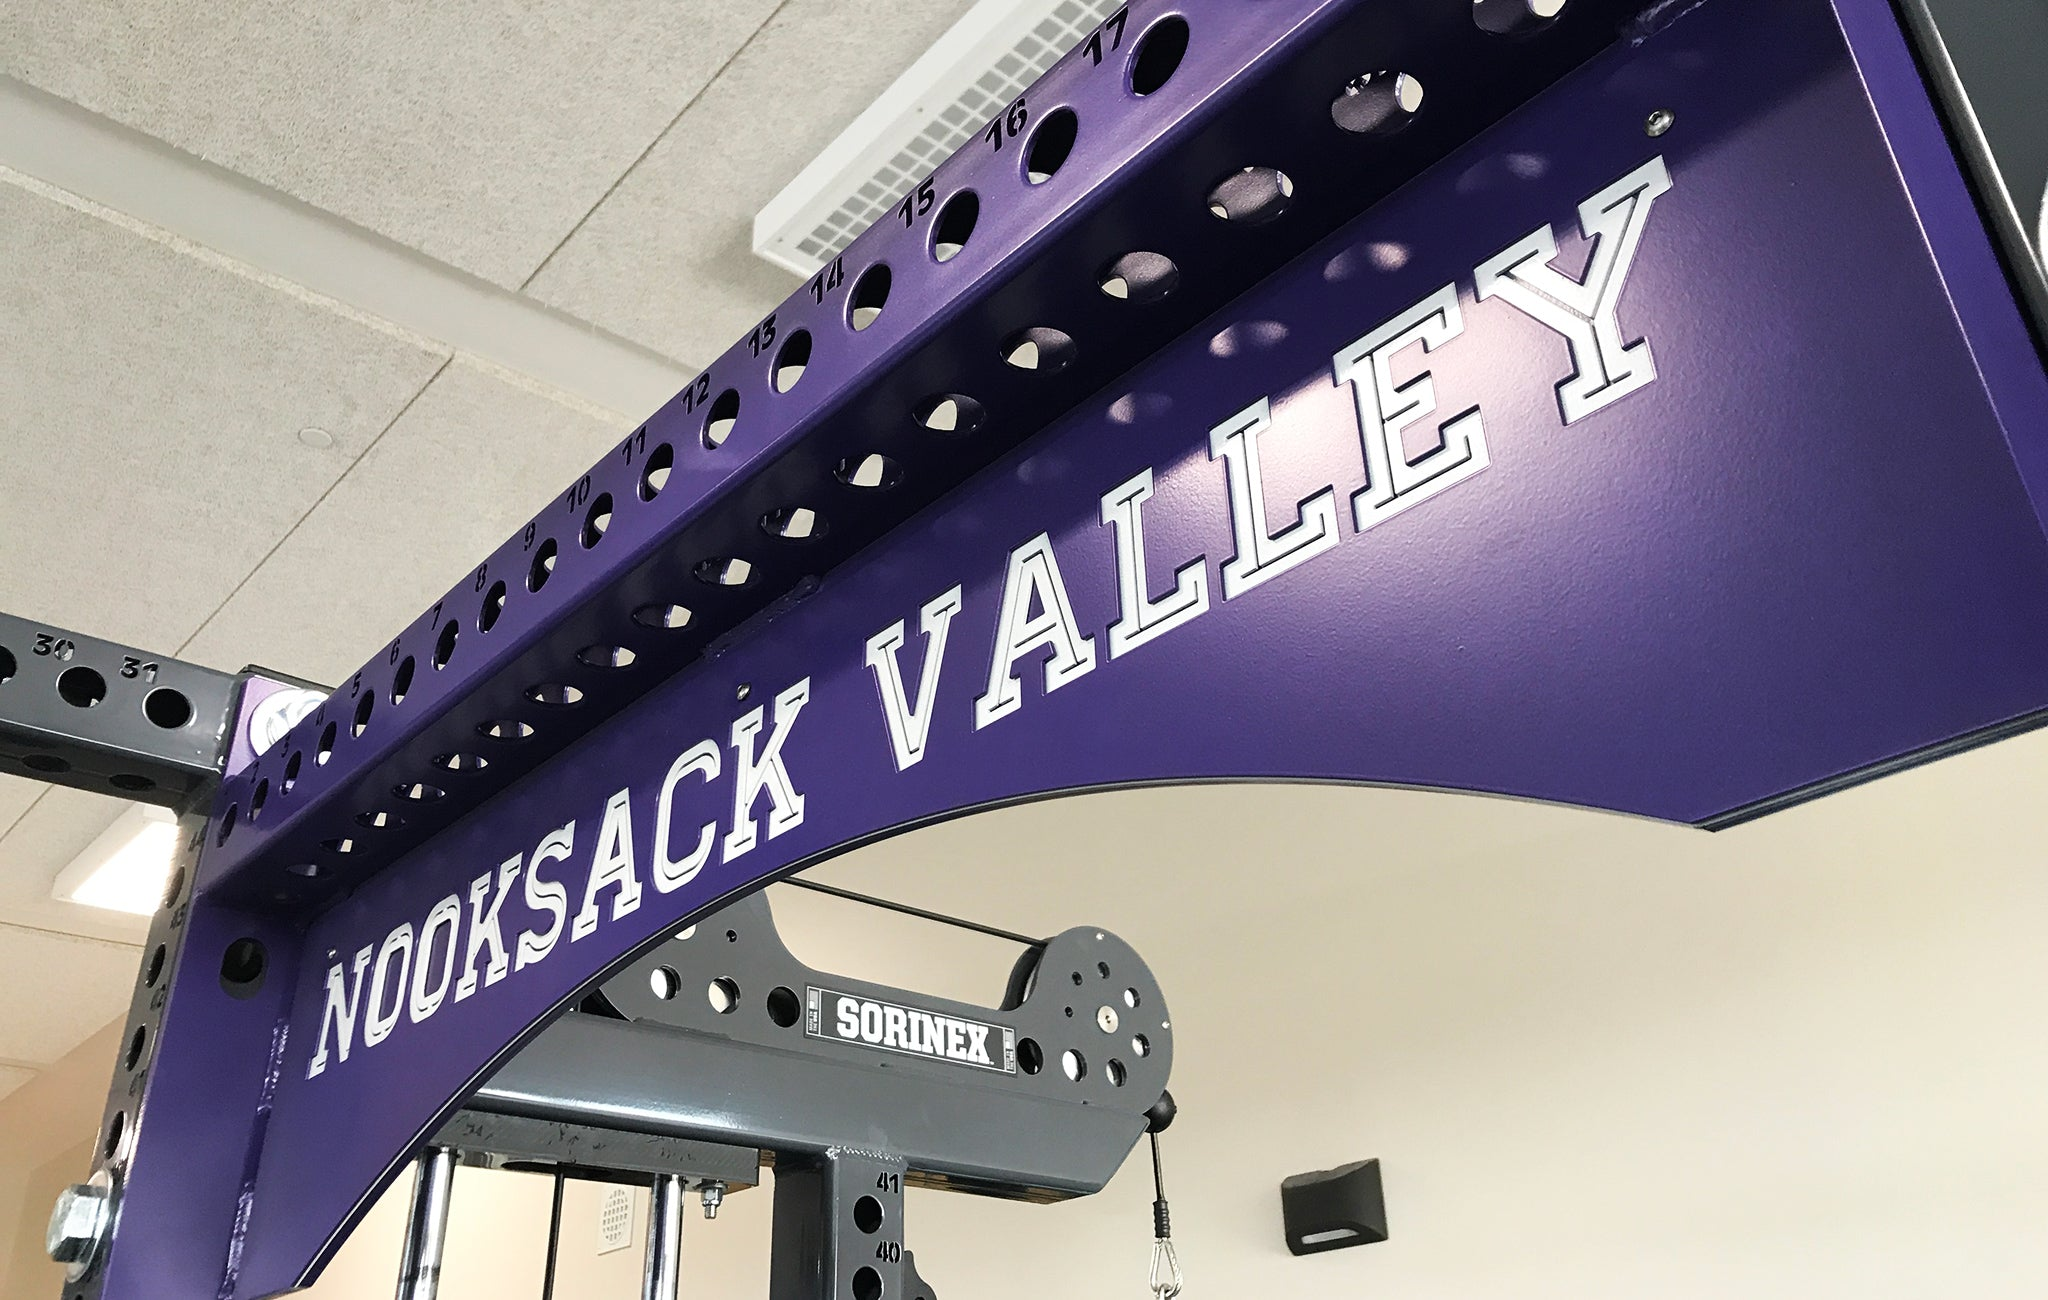 Nooksack Valley athletics